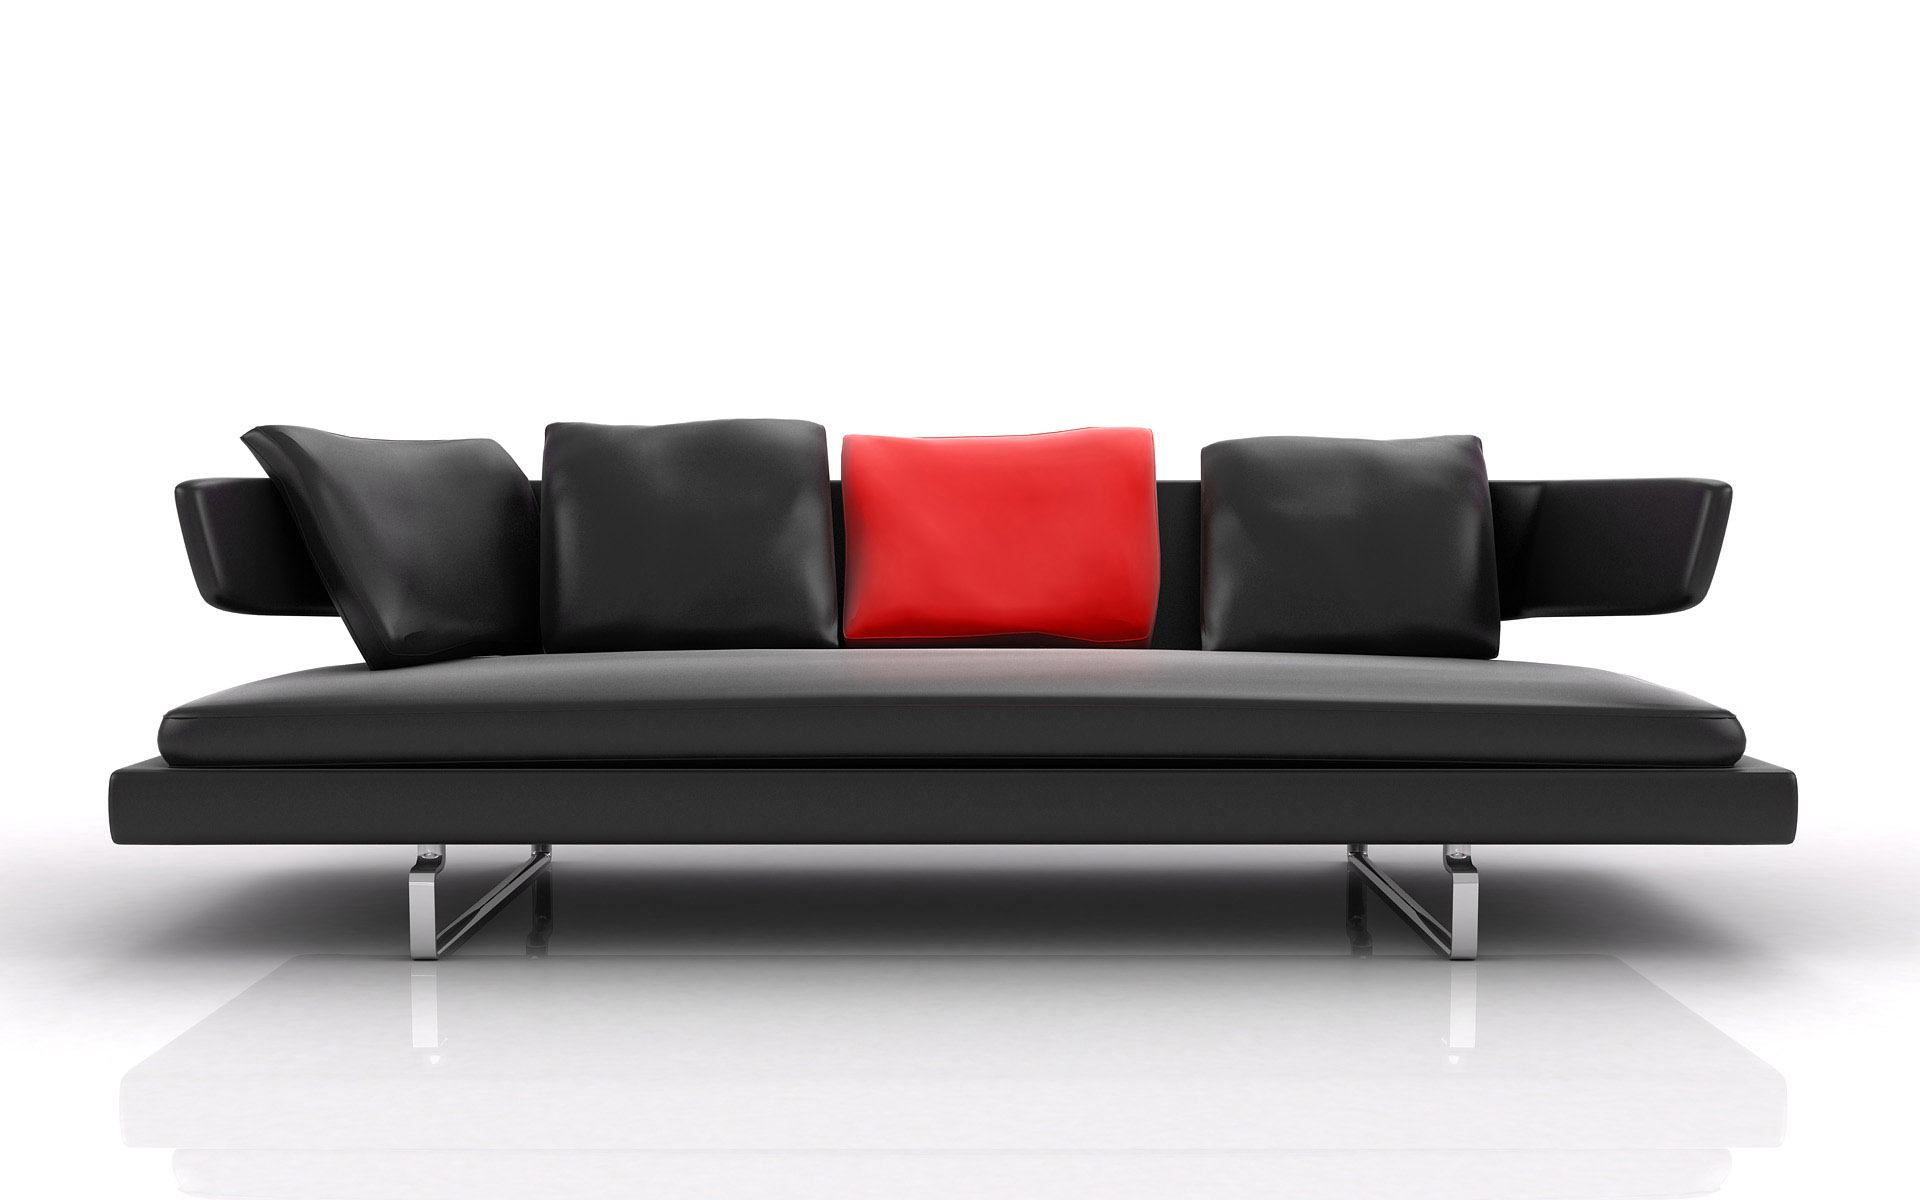 Modern leather sofa interior design ideas for Modern leather furniture